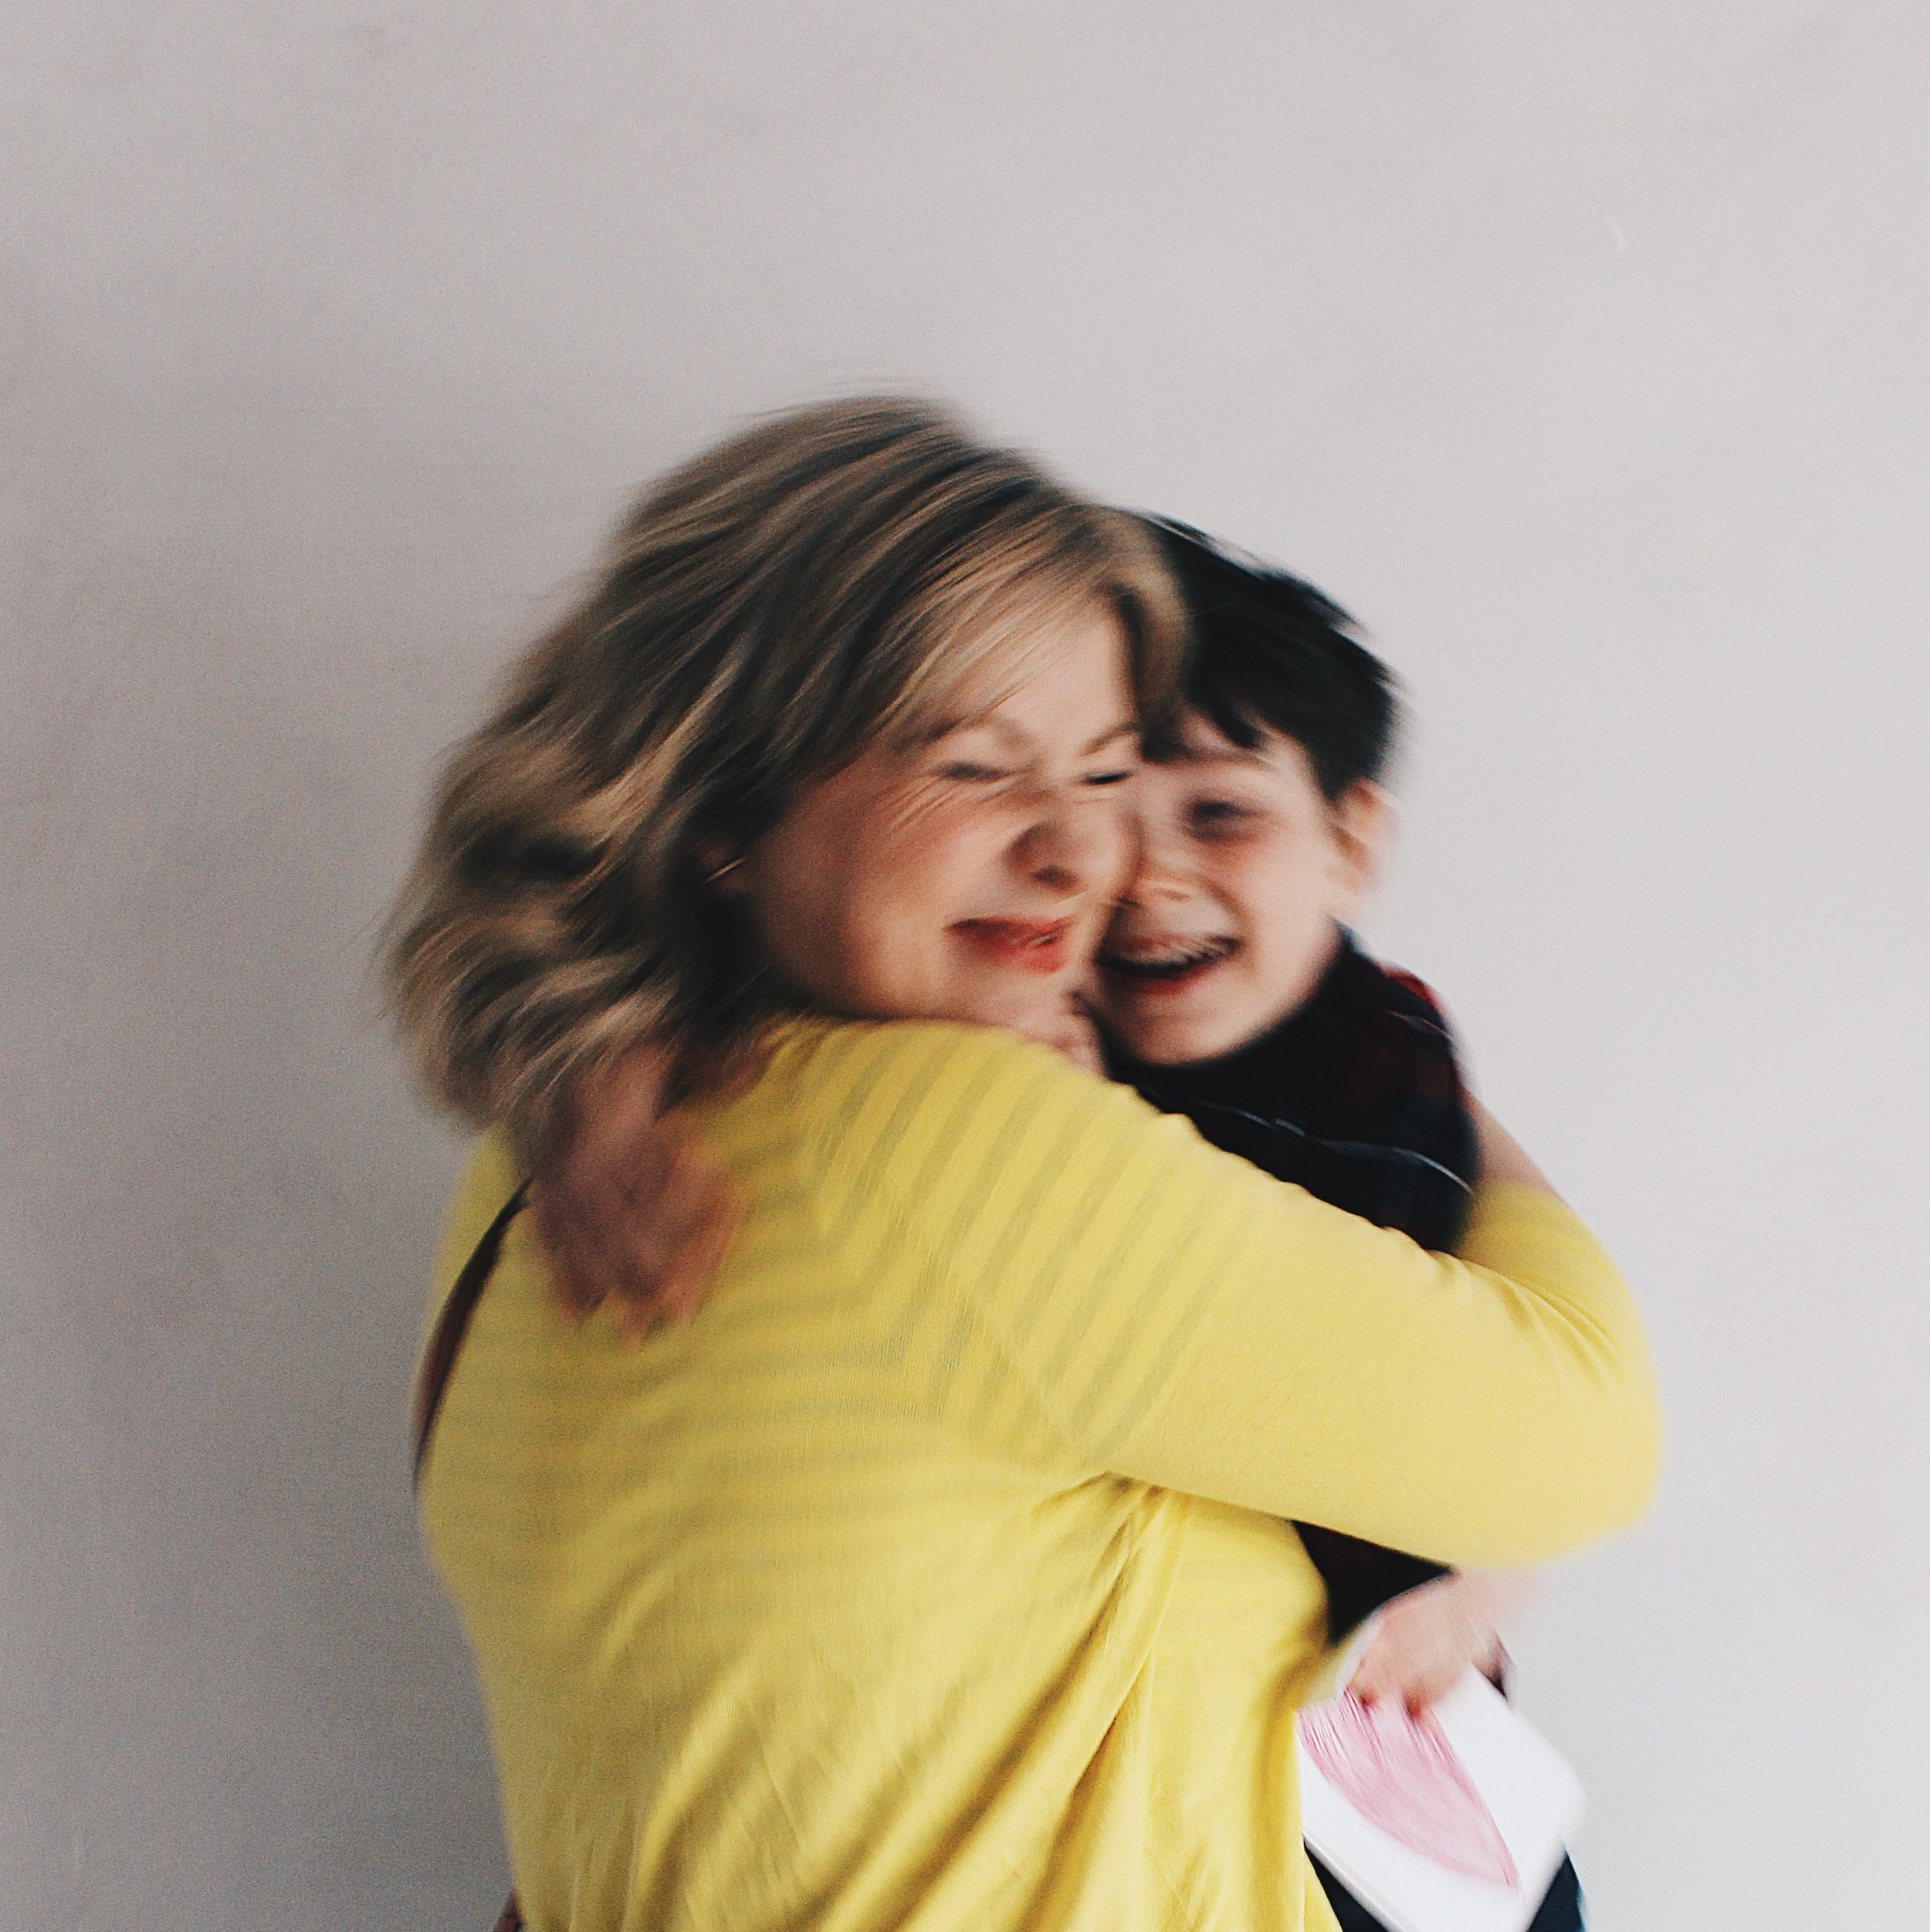 The impossible task of getting a nice still photograph with a 7 year old boy!!